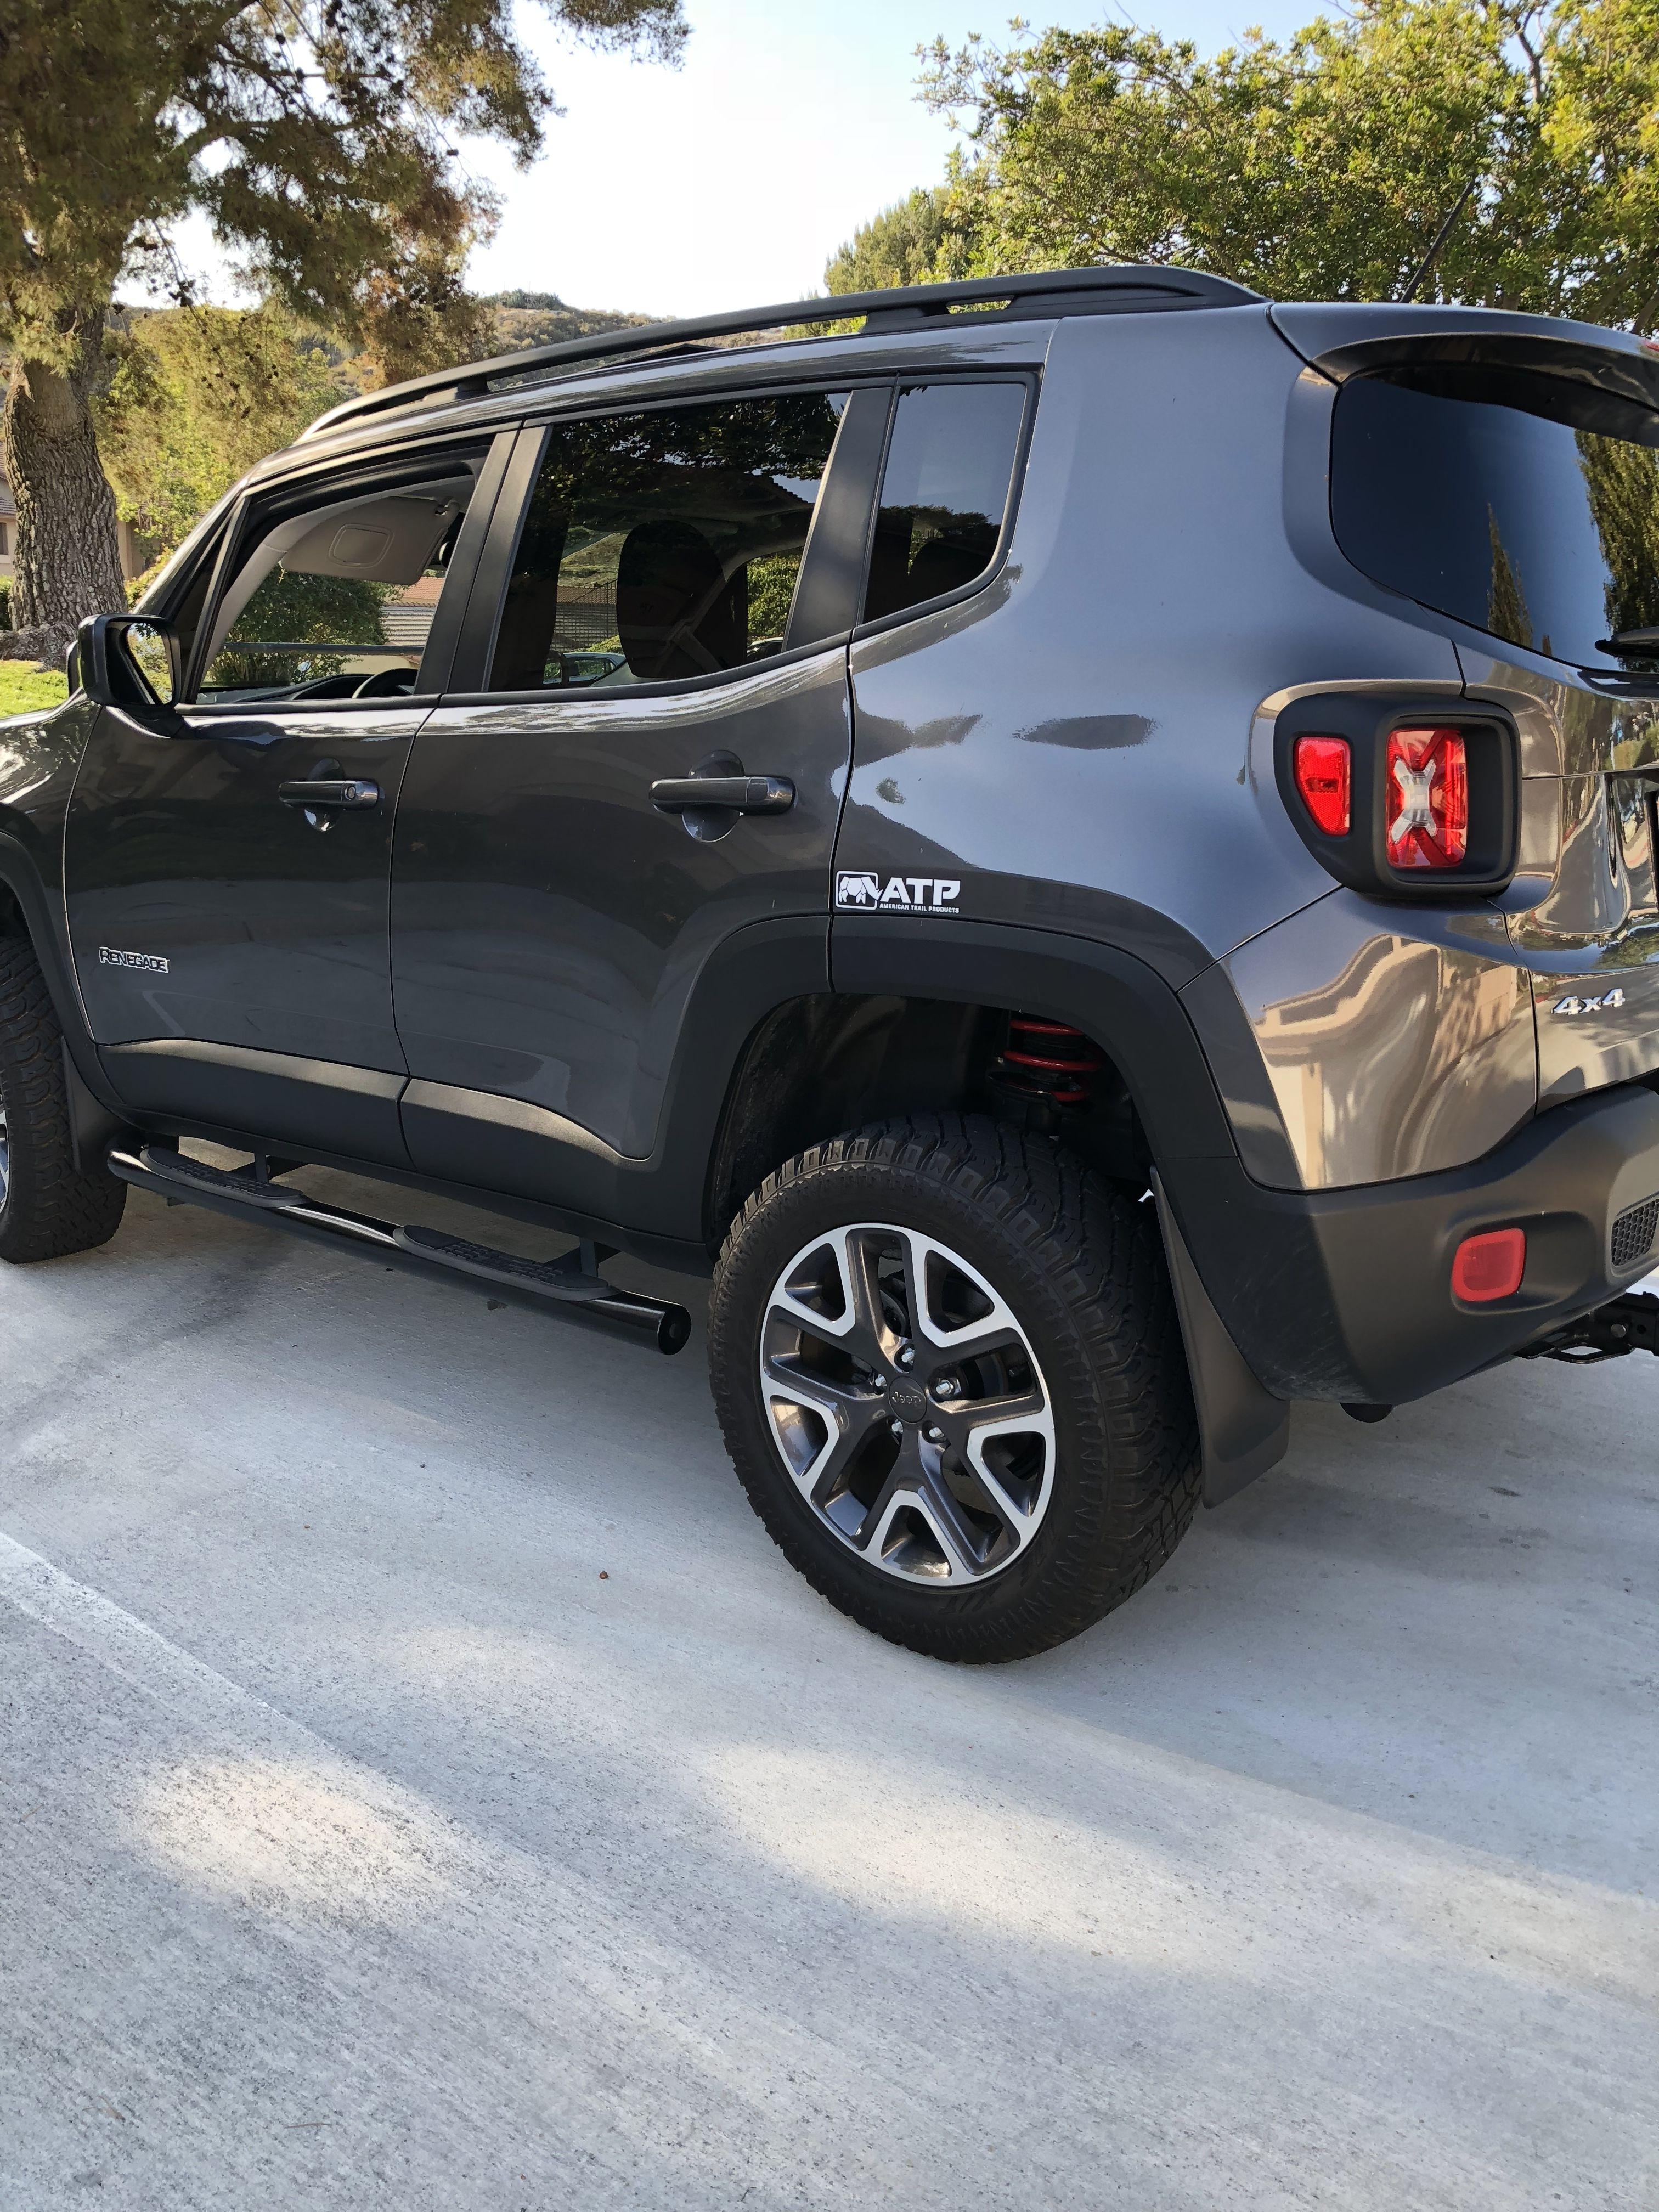 Pin By Nathan On Cars Jeep Renegade Jeep Renegade 2017 Jeep Renegade Trailhawk